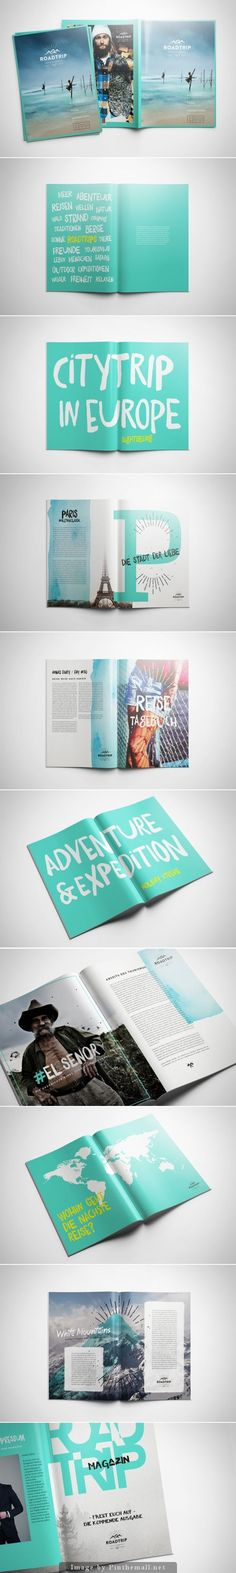 35 Great Editorial Designs For Your Inspiration   From up North